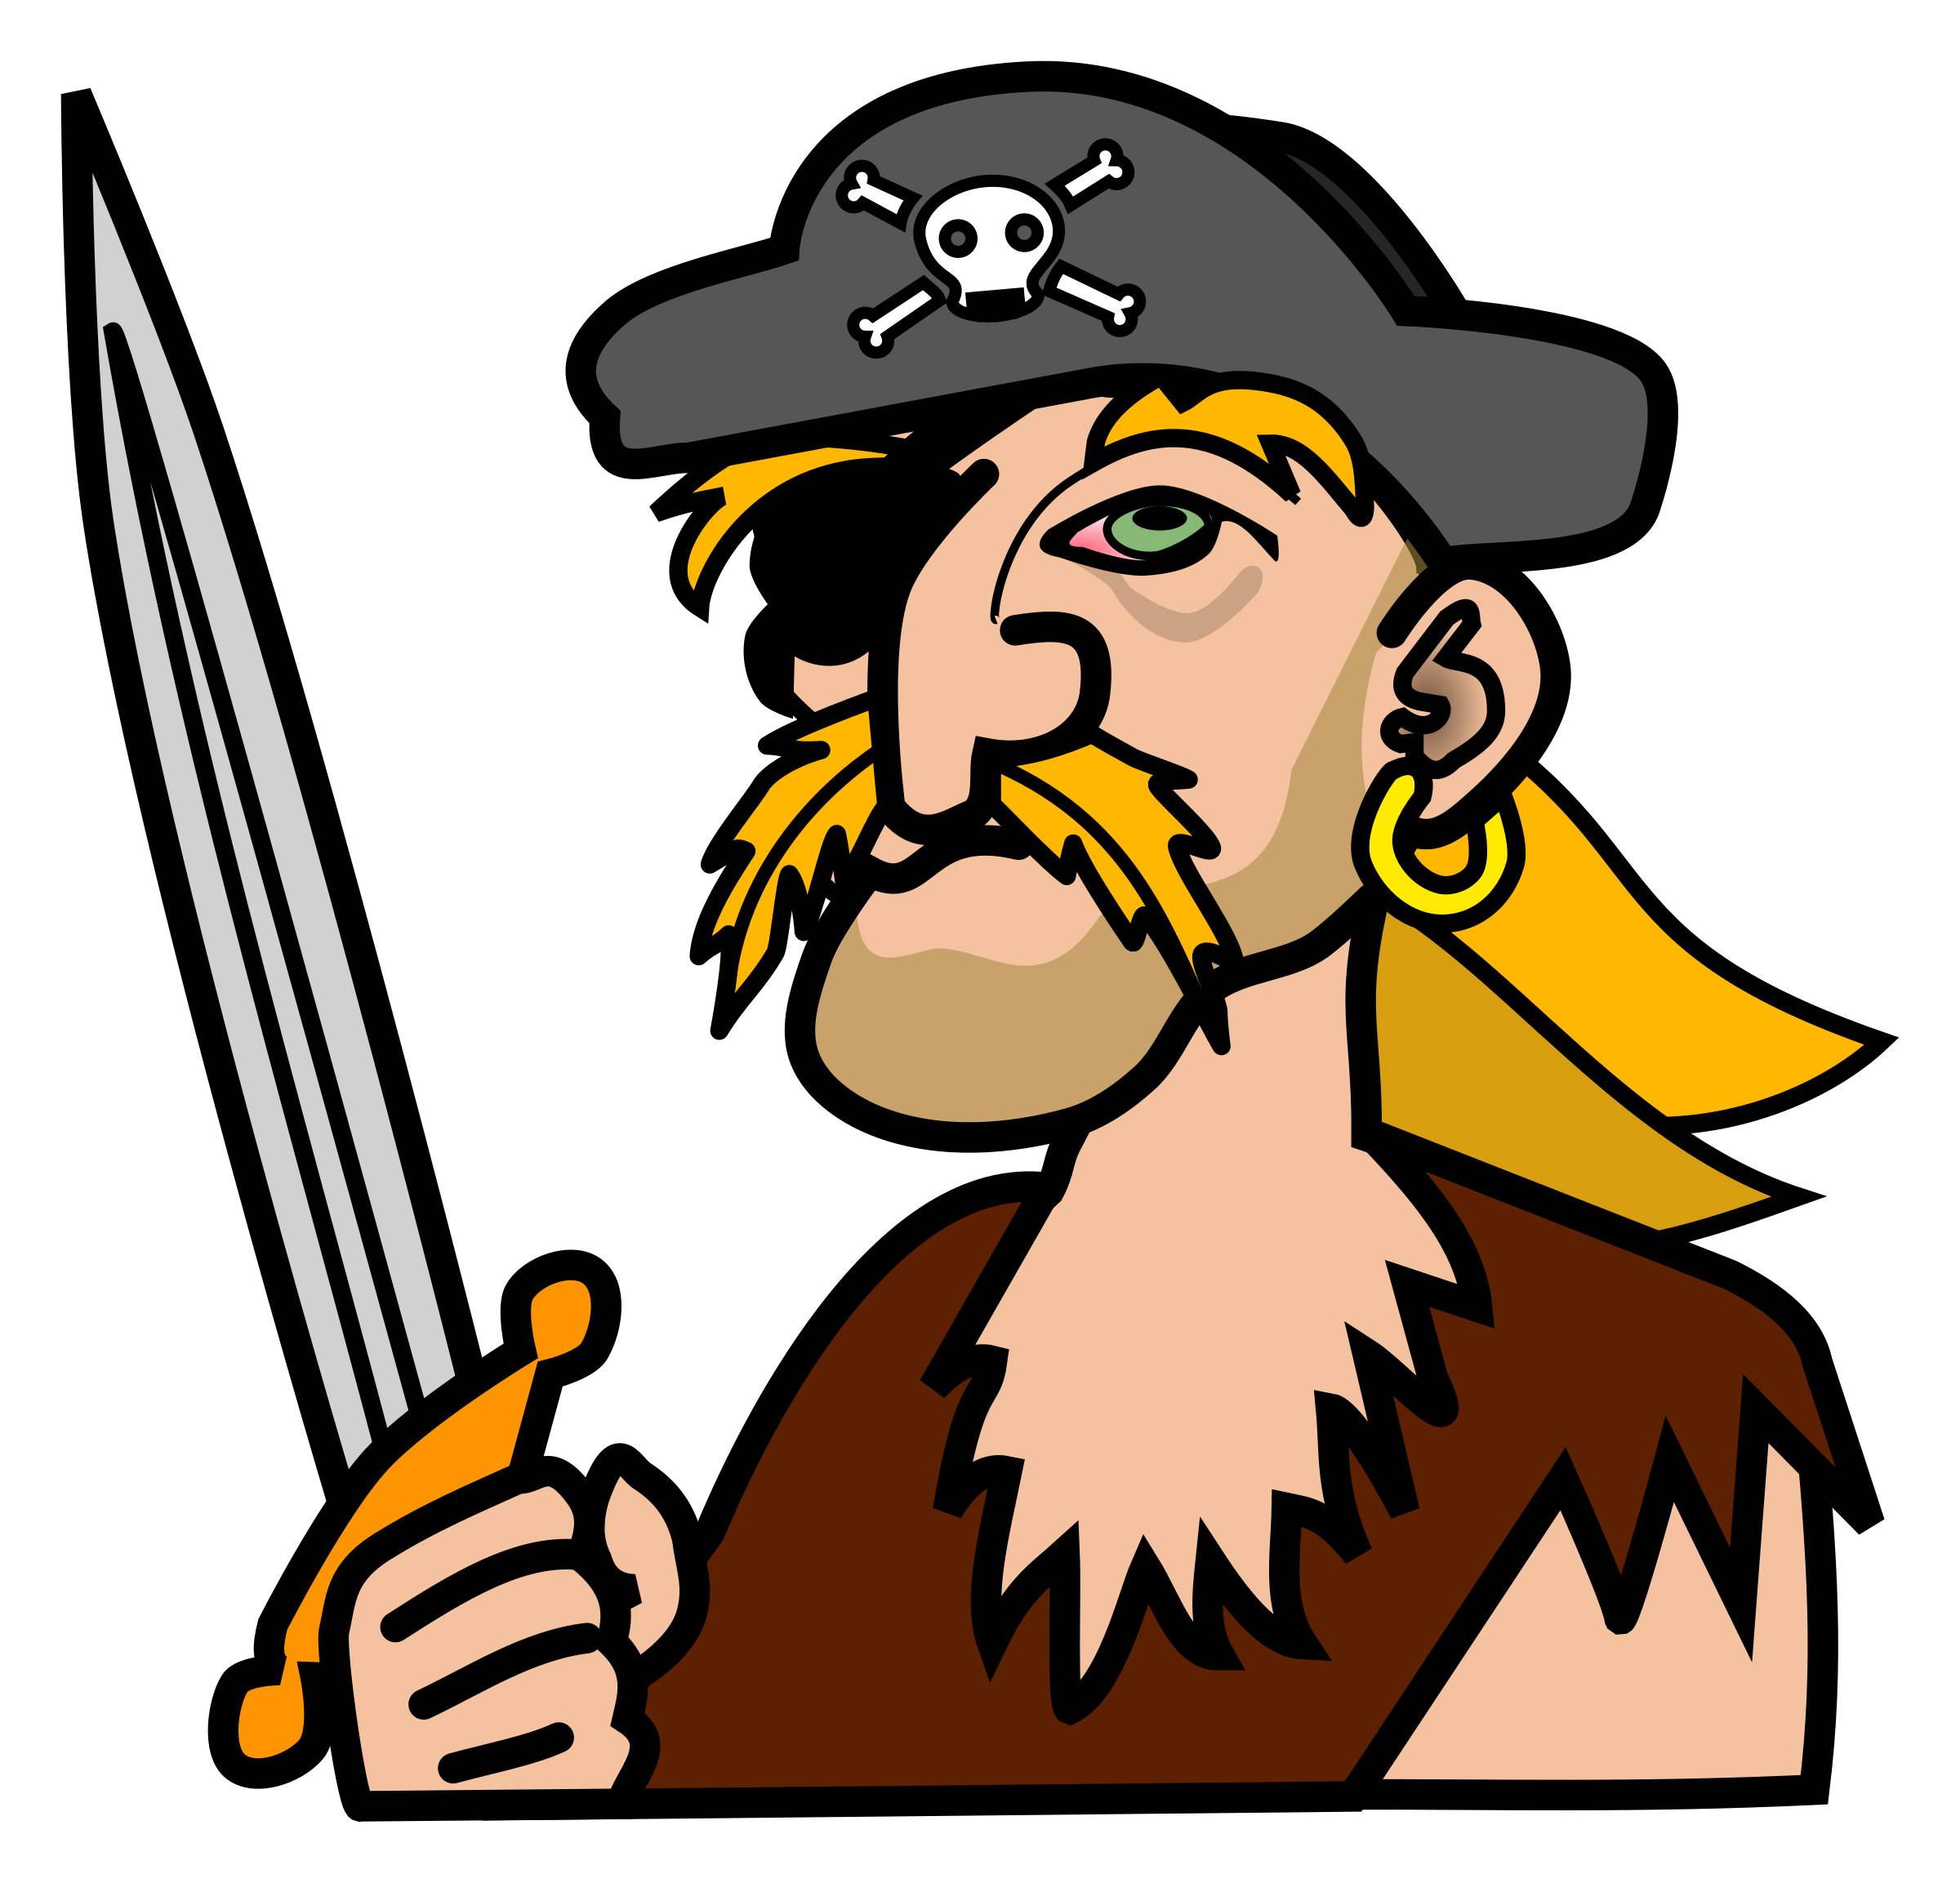 Coloured big image png. Pirate clipart pirate hat